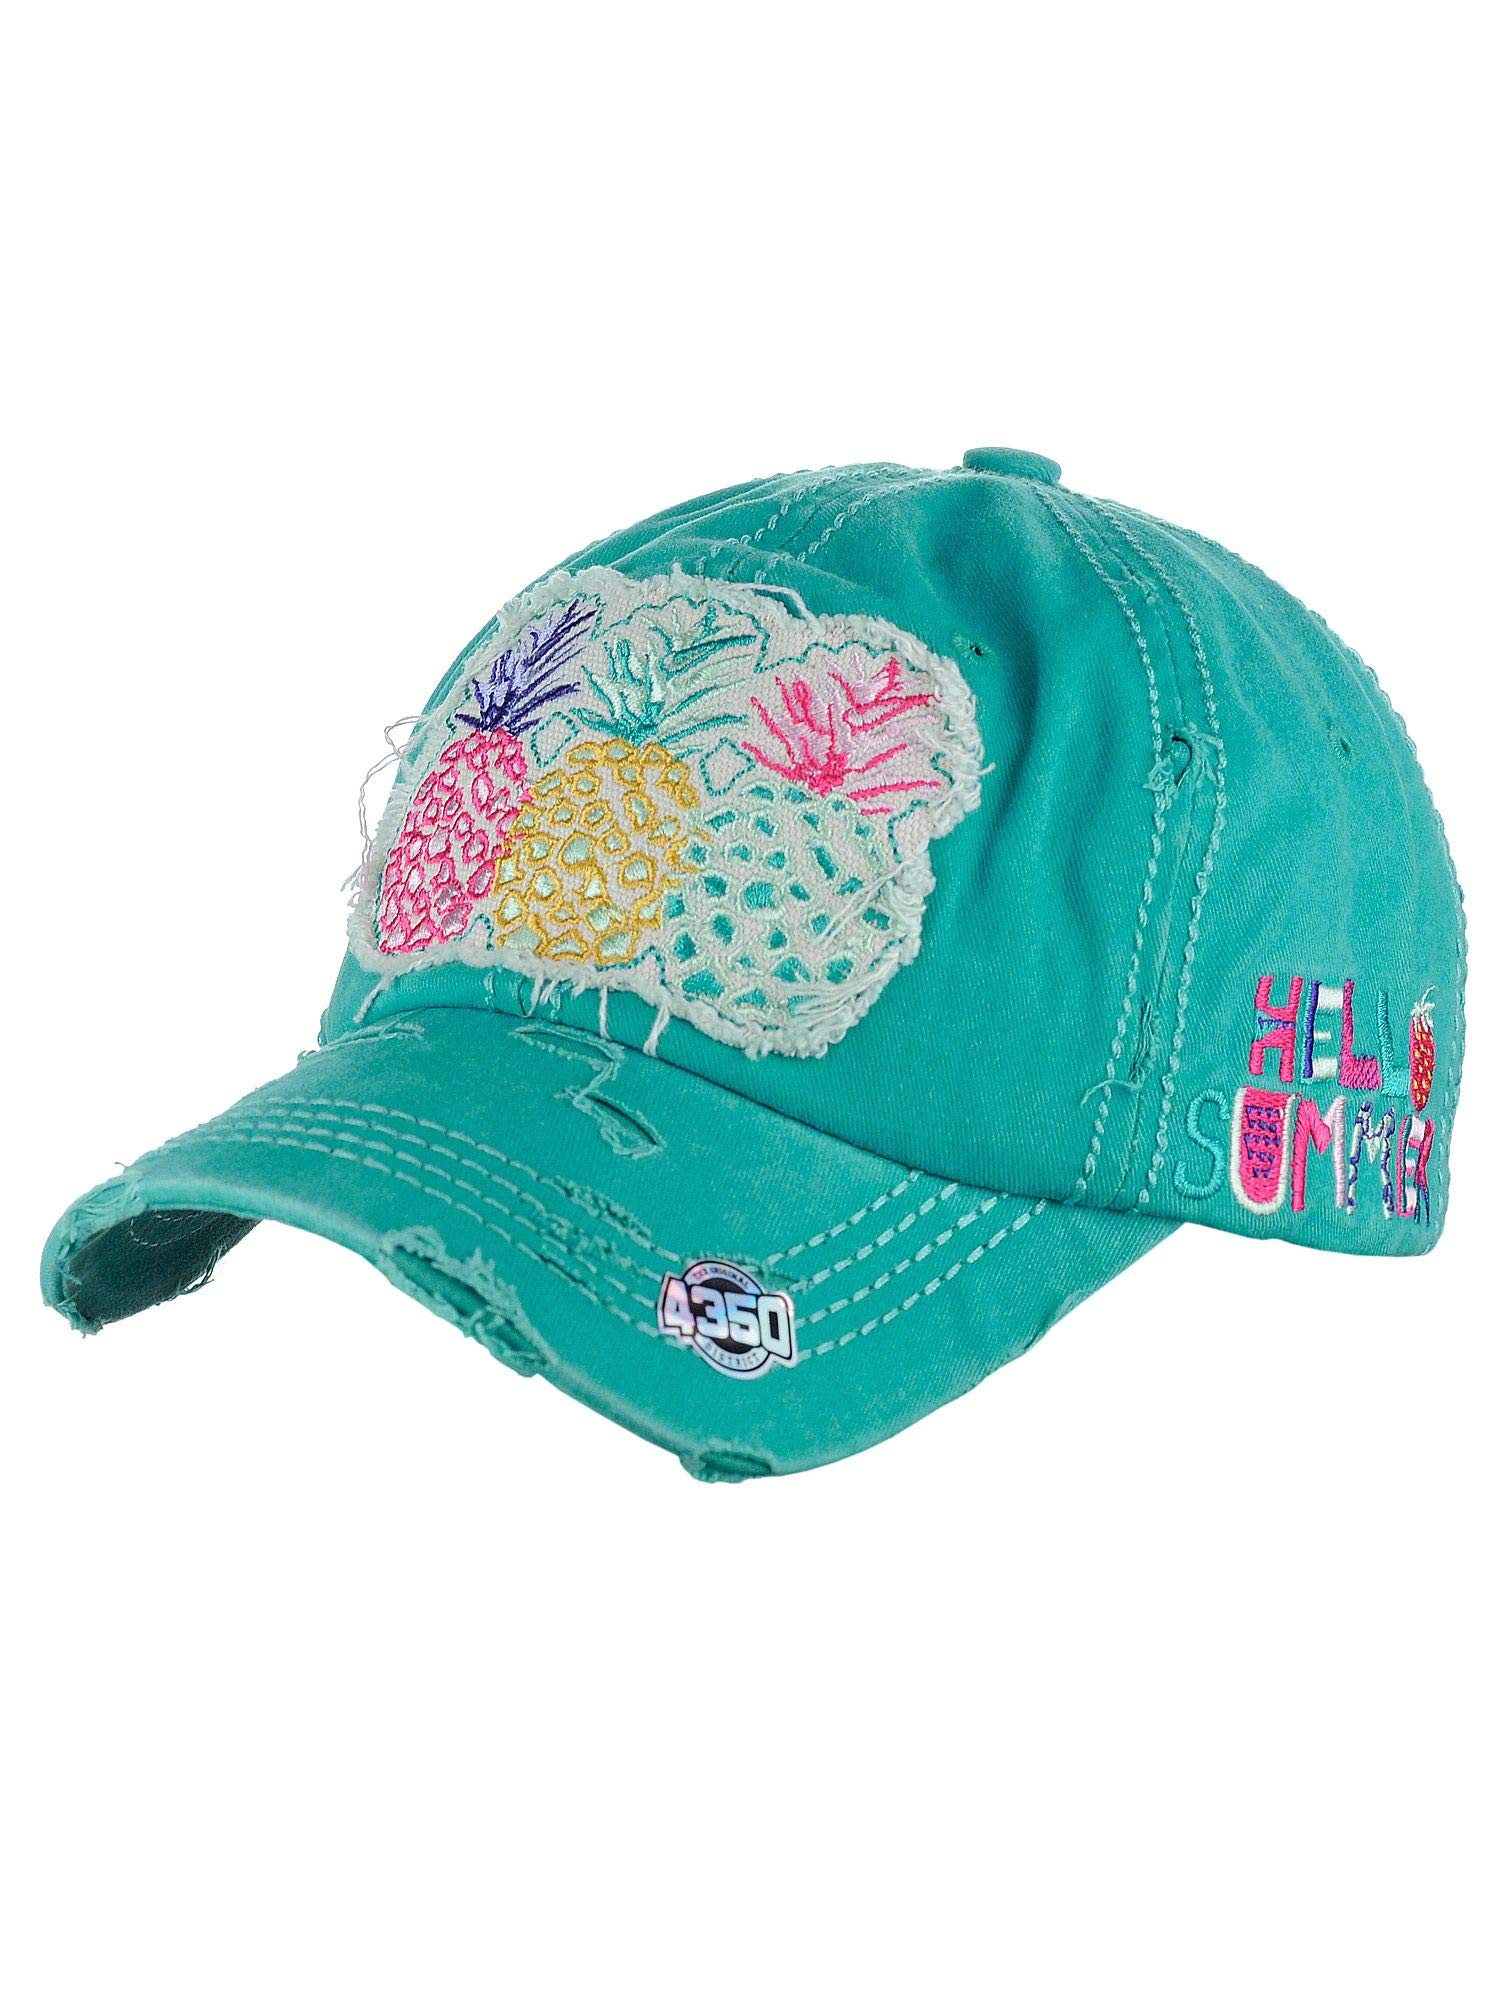 aa93dba8 NYFASHION101 Womens Baseball Cap Distressed Vintage Unconstructed  Embroidered Dad Hat, Pineapple, Turquoise